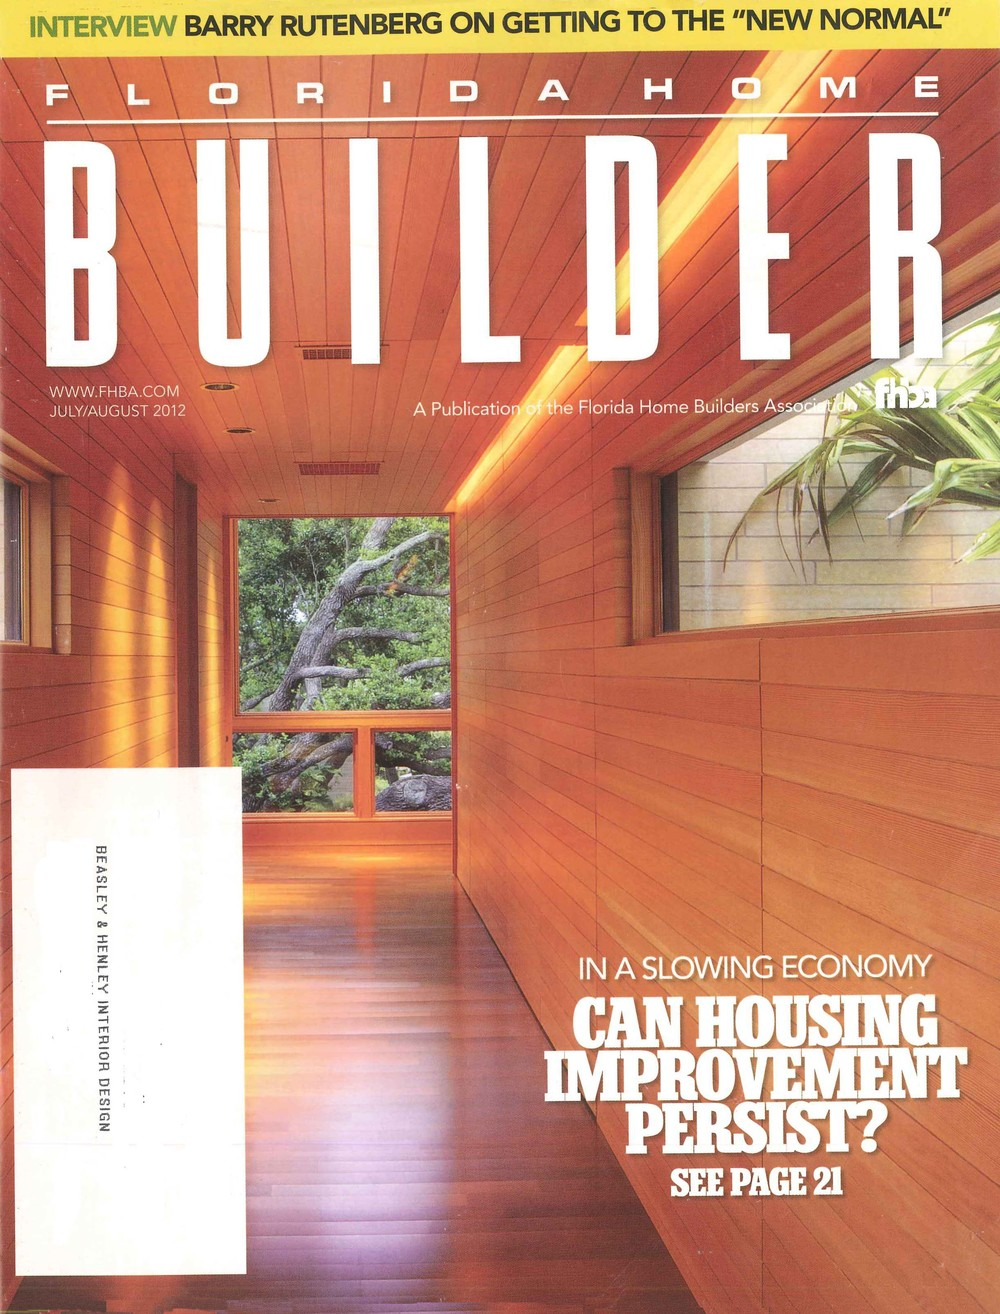 Florida Home Builder, Cover 2012.jpg